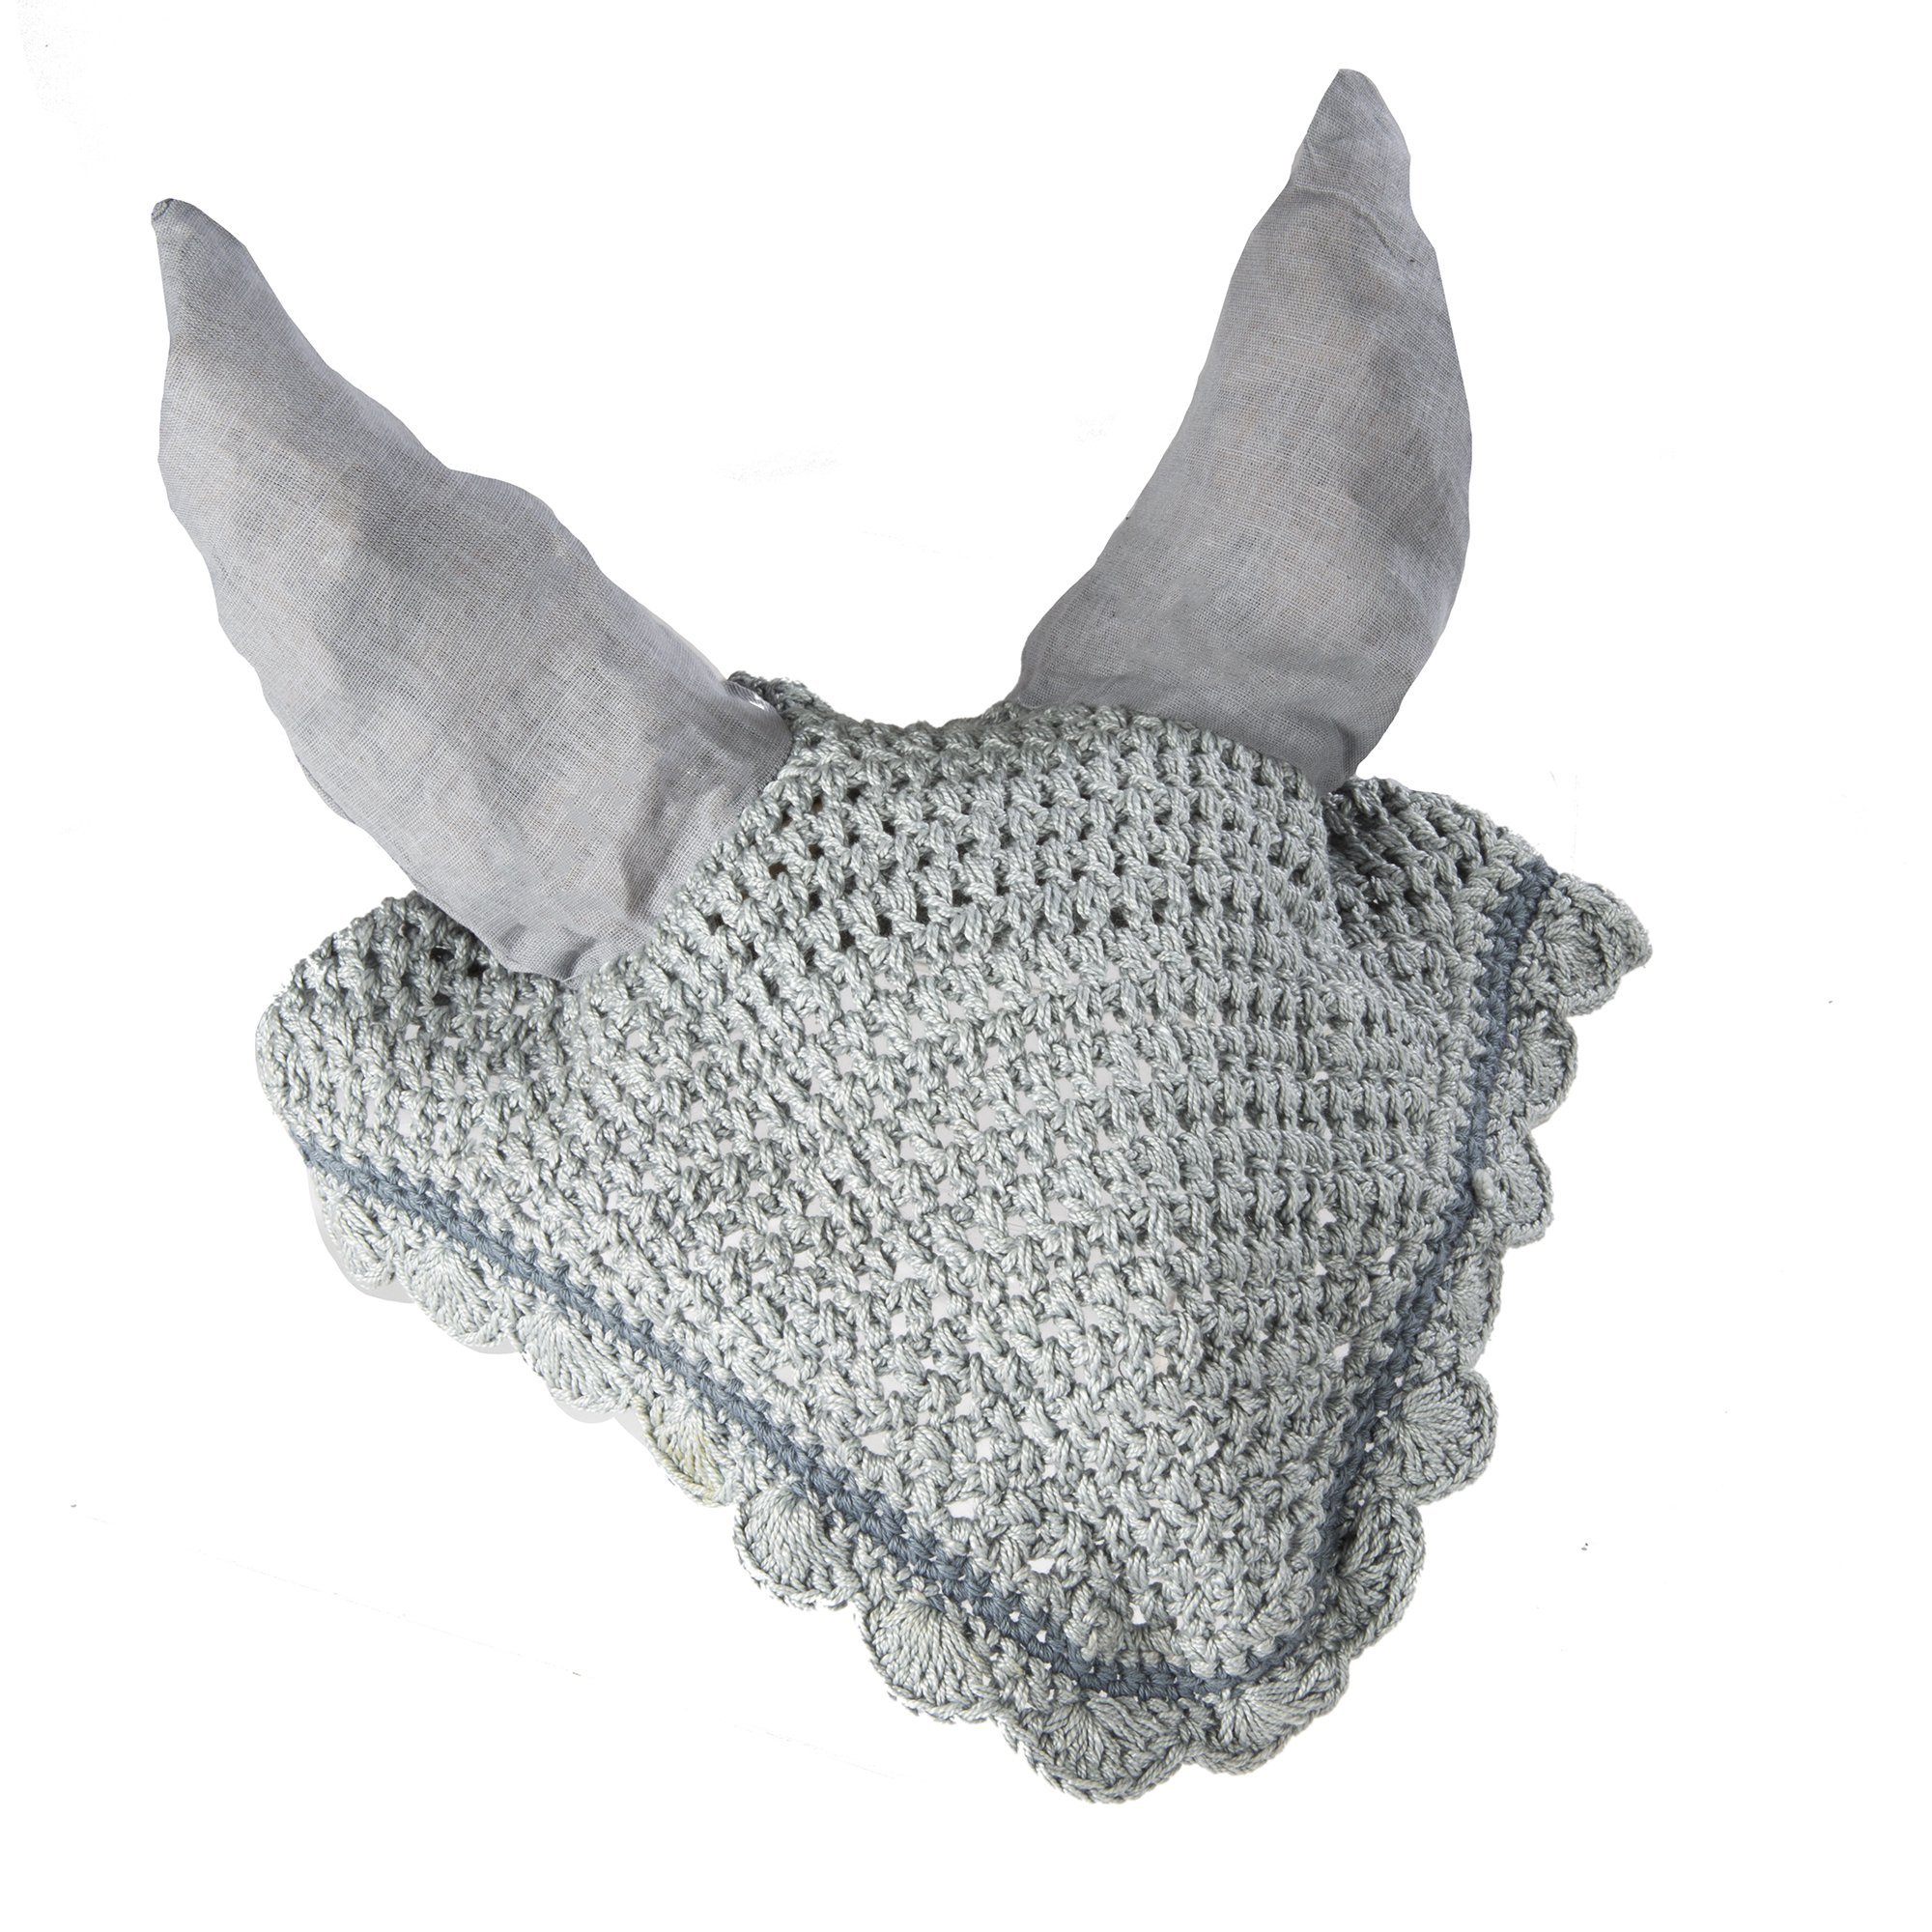 Intrepid International All Crochet Fly Veil with Ears, Grey/Silver, Horse Size